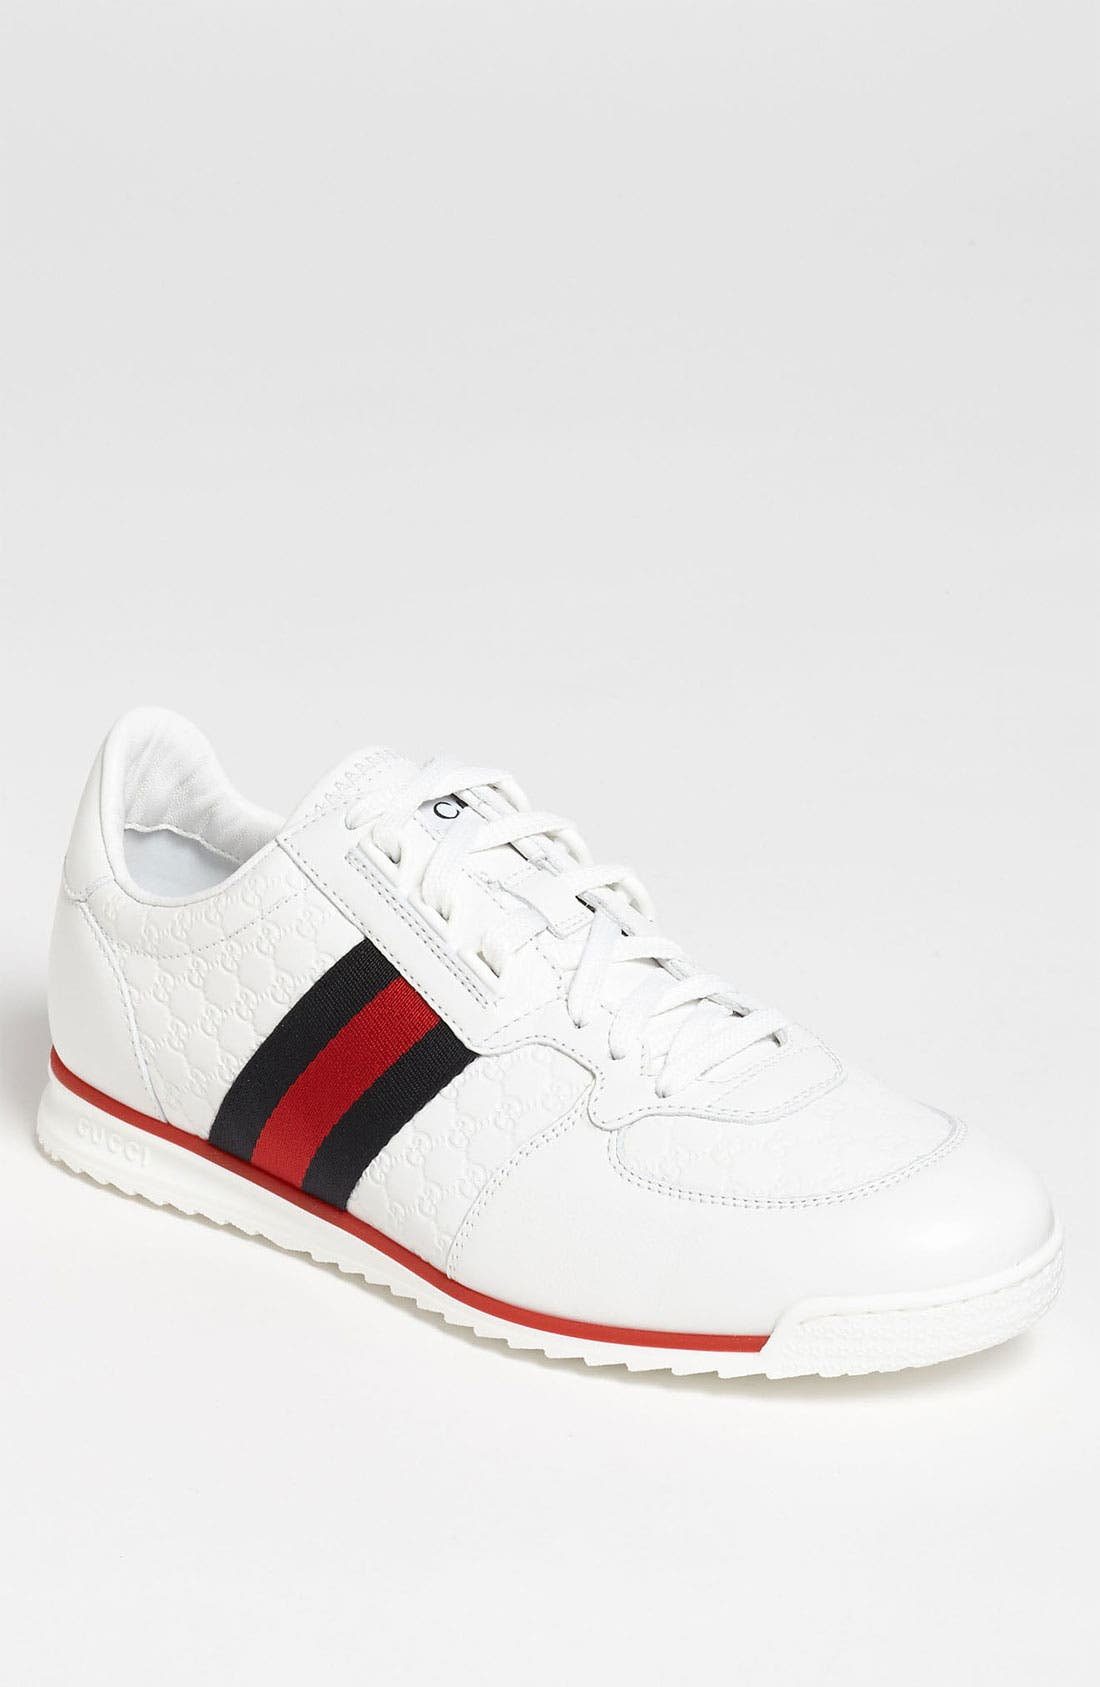 what are tennis shoes called in canada style guru